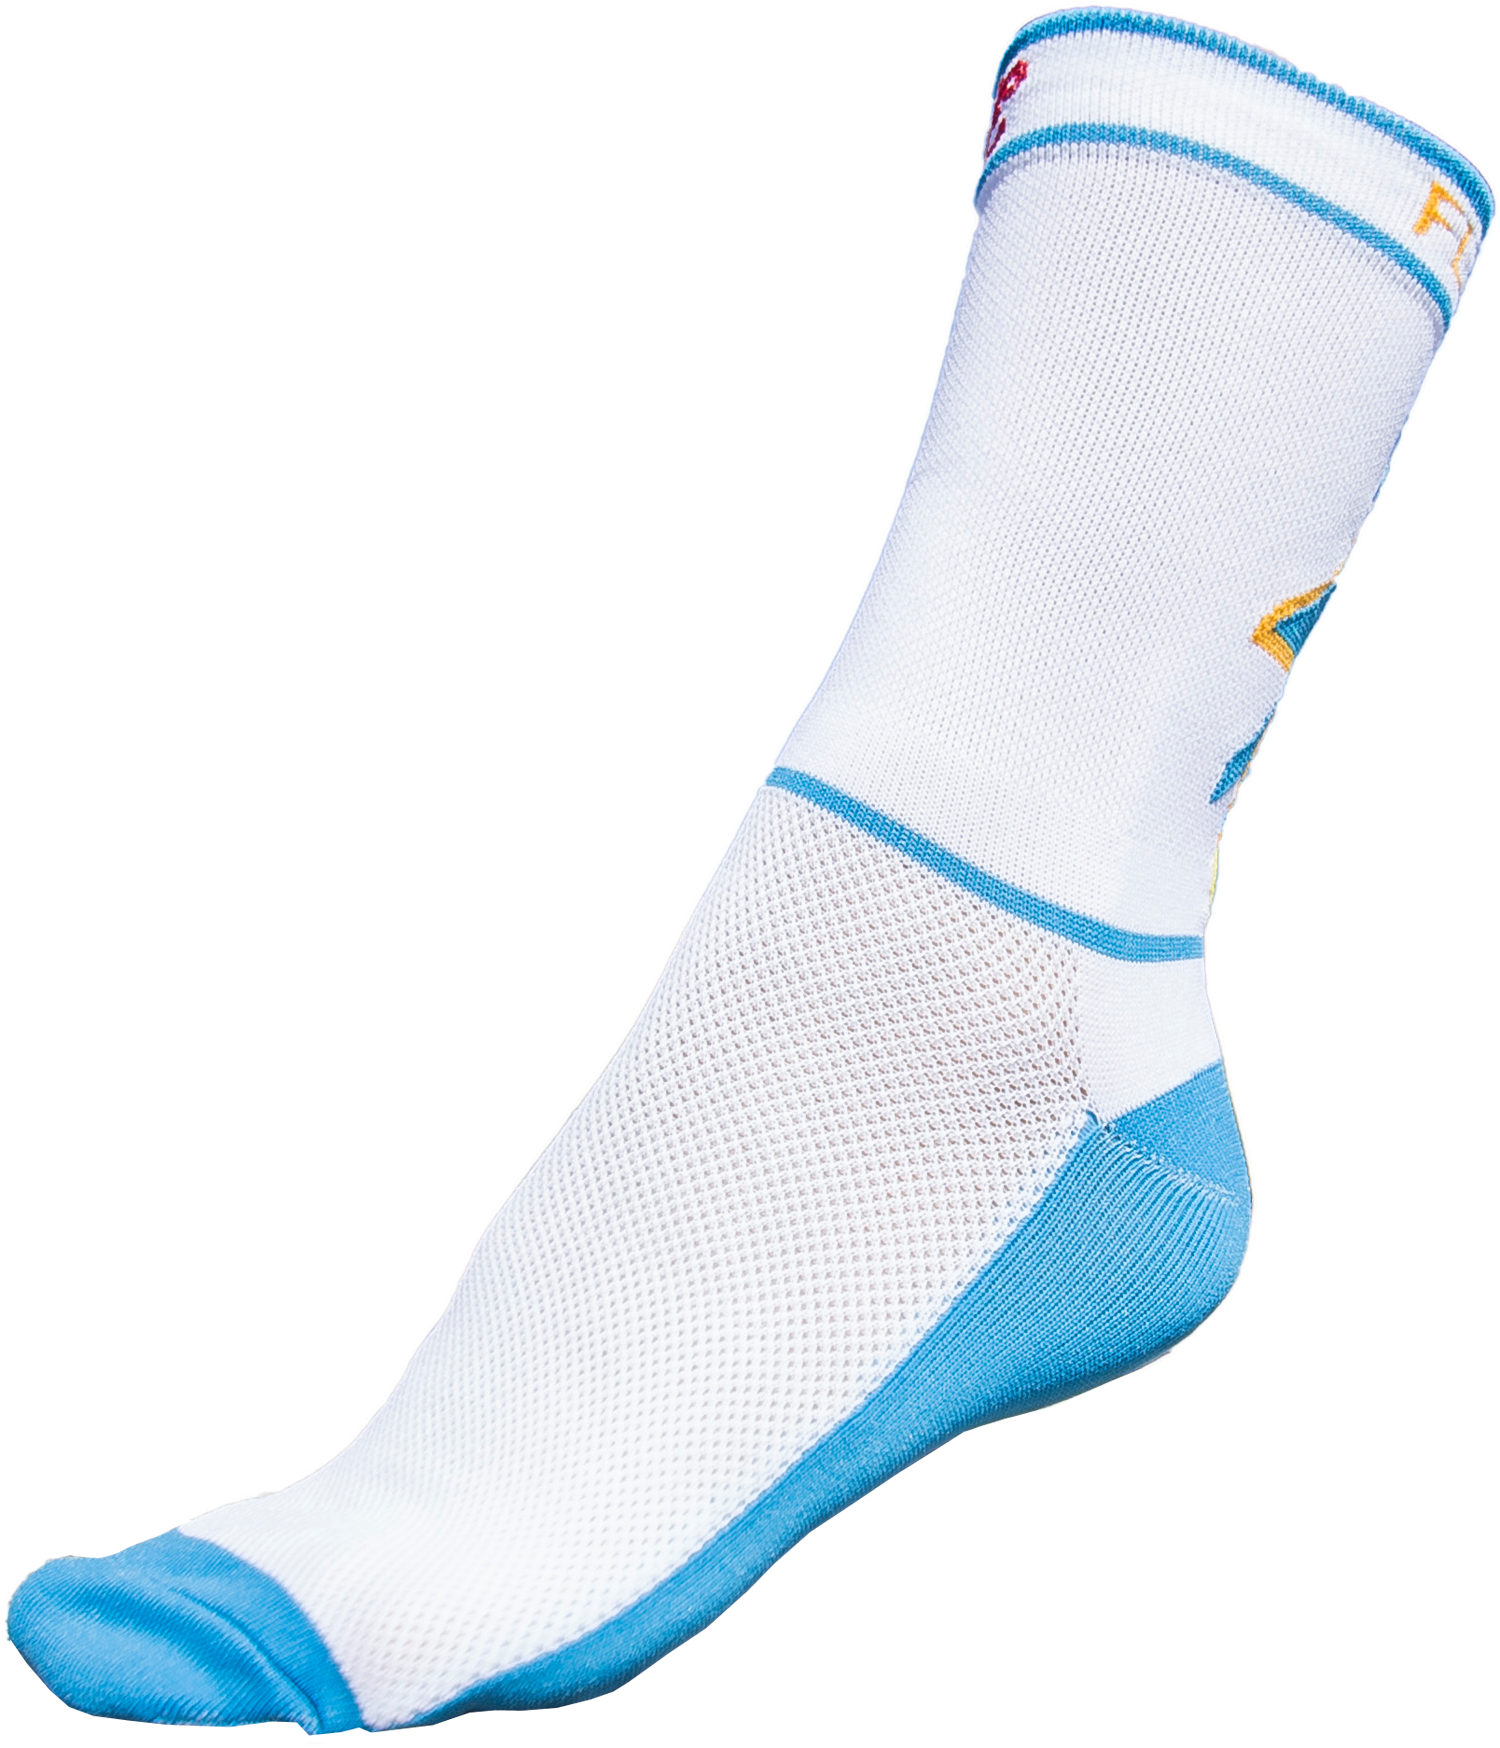 Performance Socks - FLY HIGH